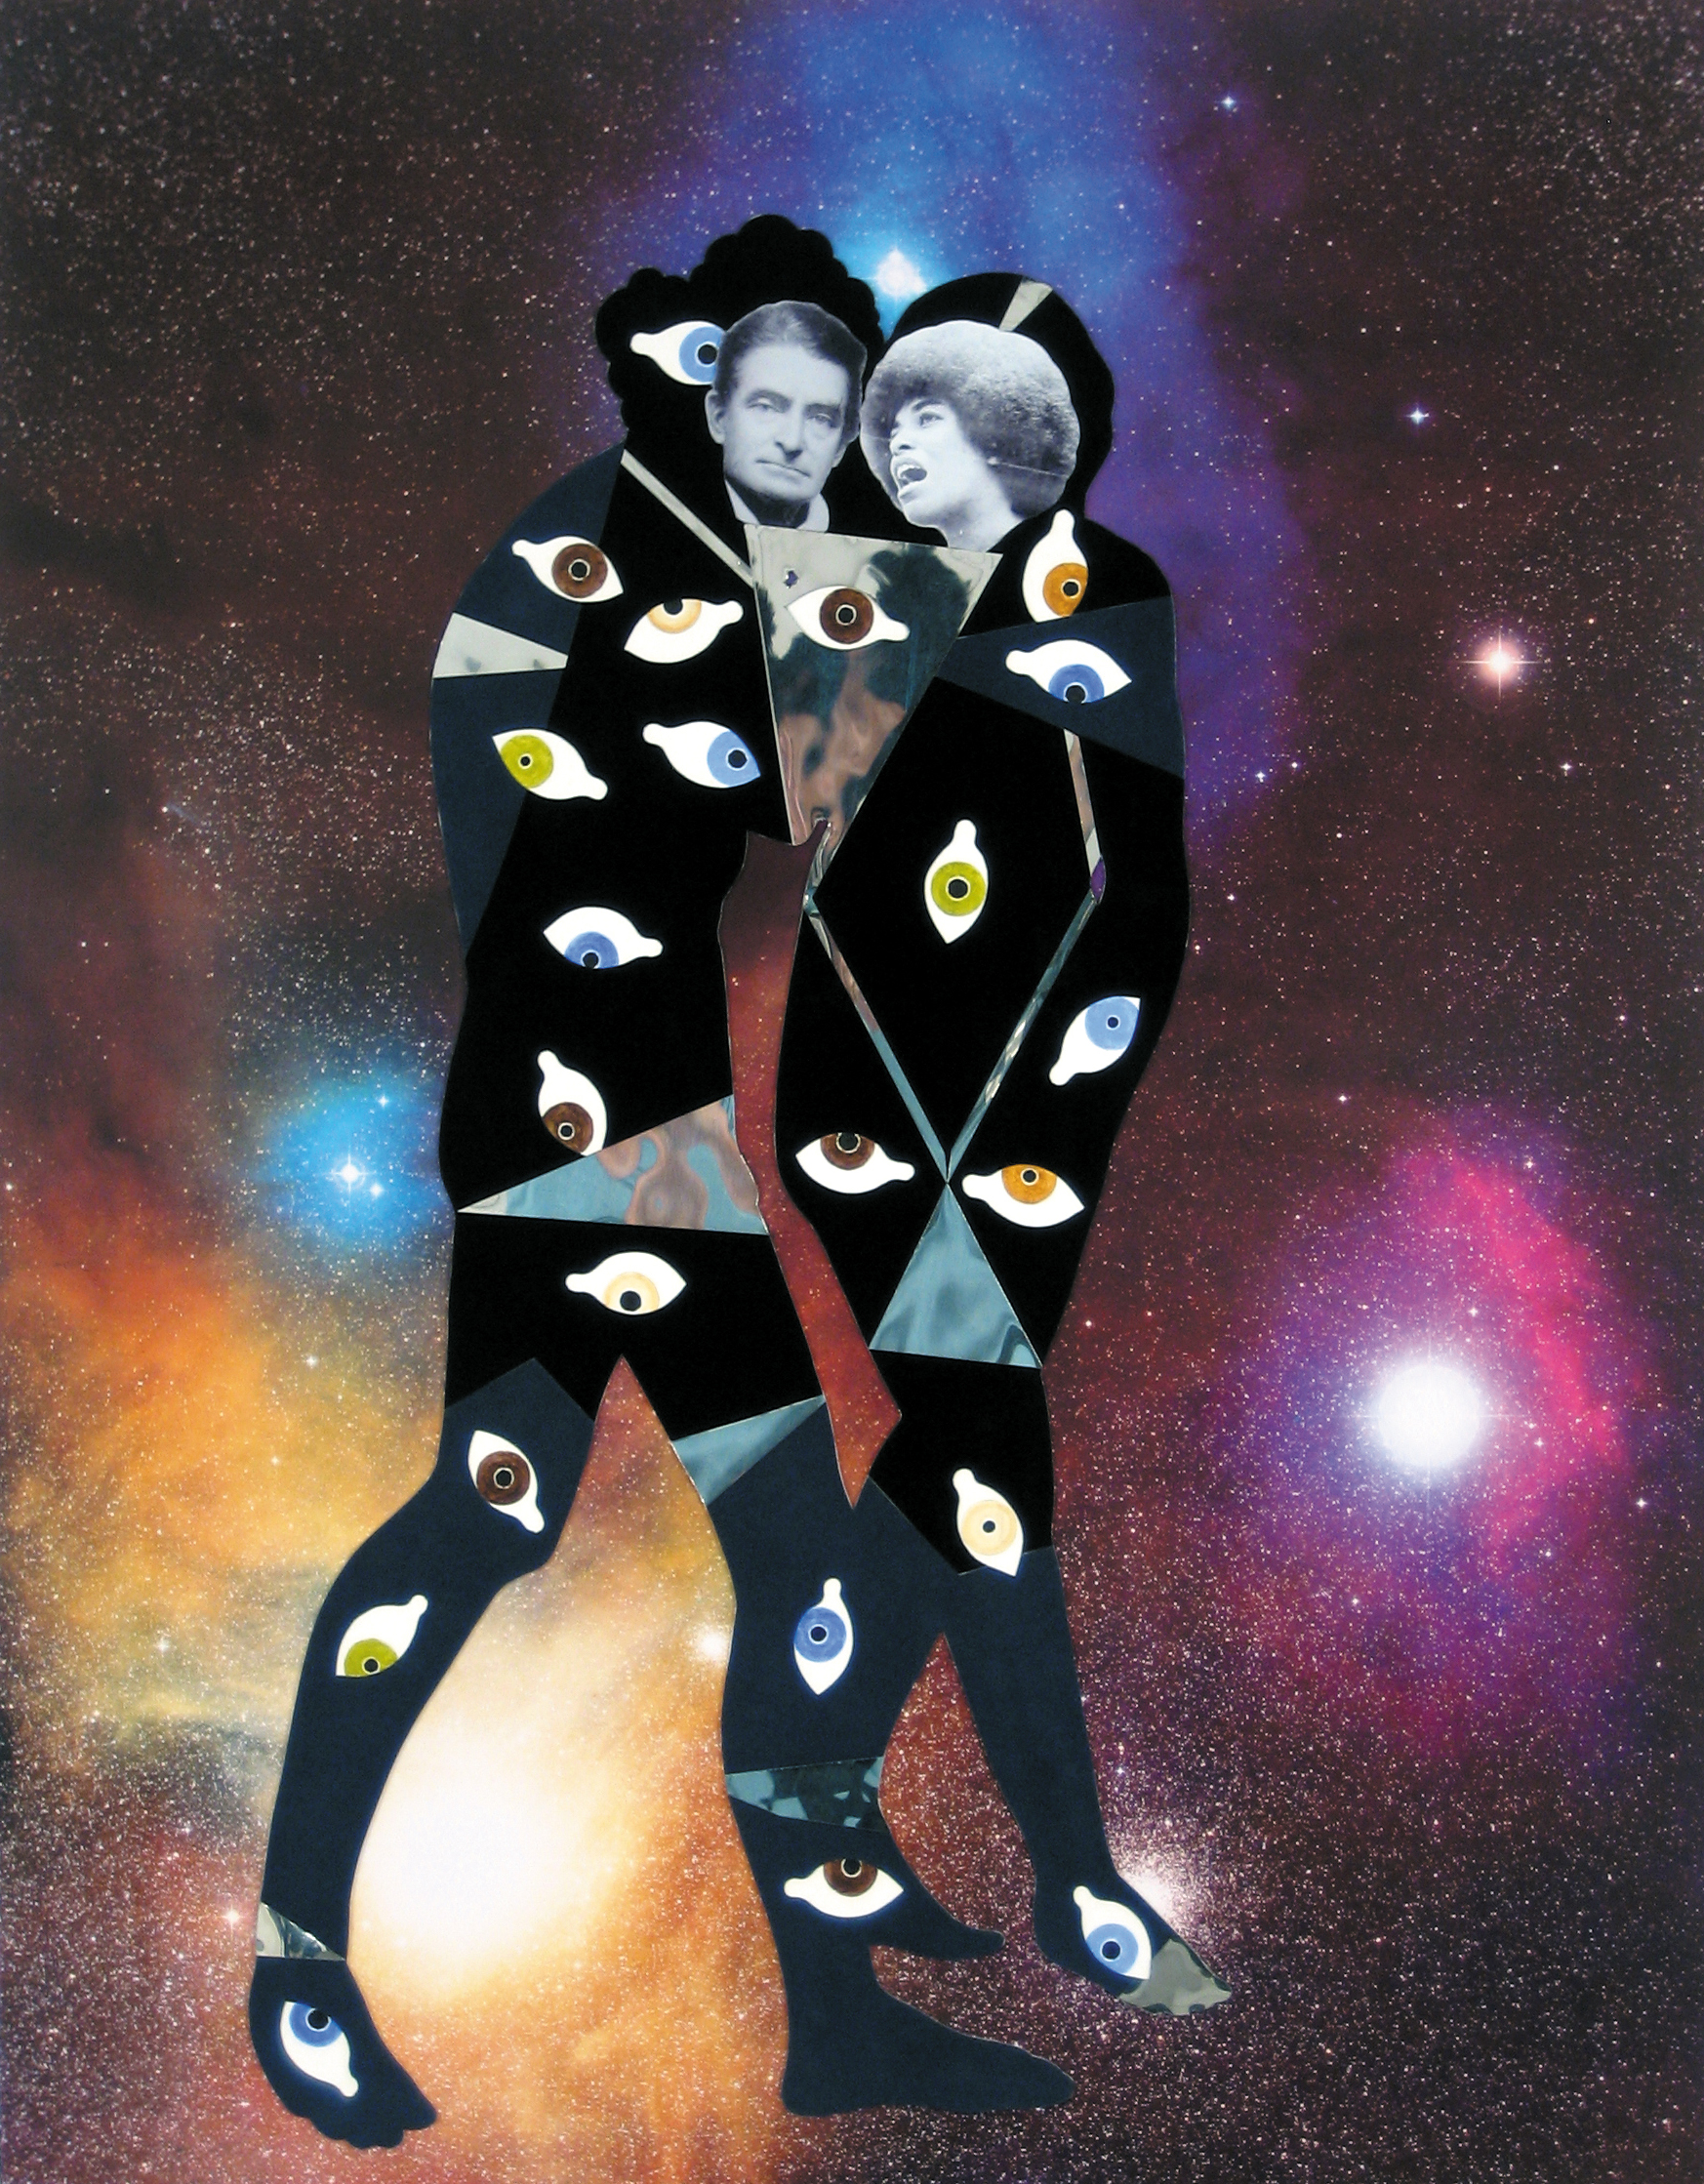 John & Angela at Antares and Reflection Nebula in the Rho Ophluchus Dark Cloud - hubble telescope poster, velour paper, mirror mylar, inkjet print, and acrylic28 x 22 in.29 x 23 x 1 1/2 in. framed